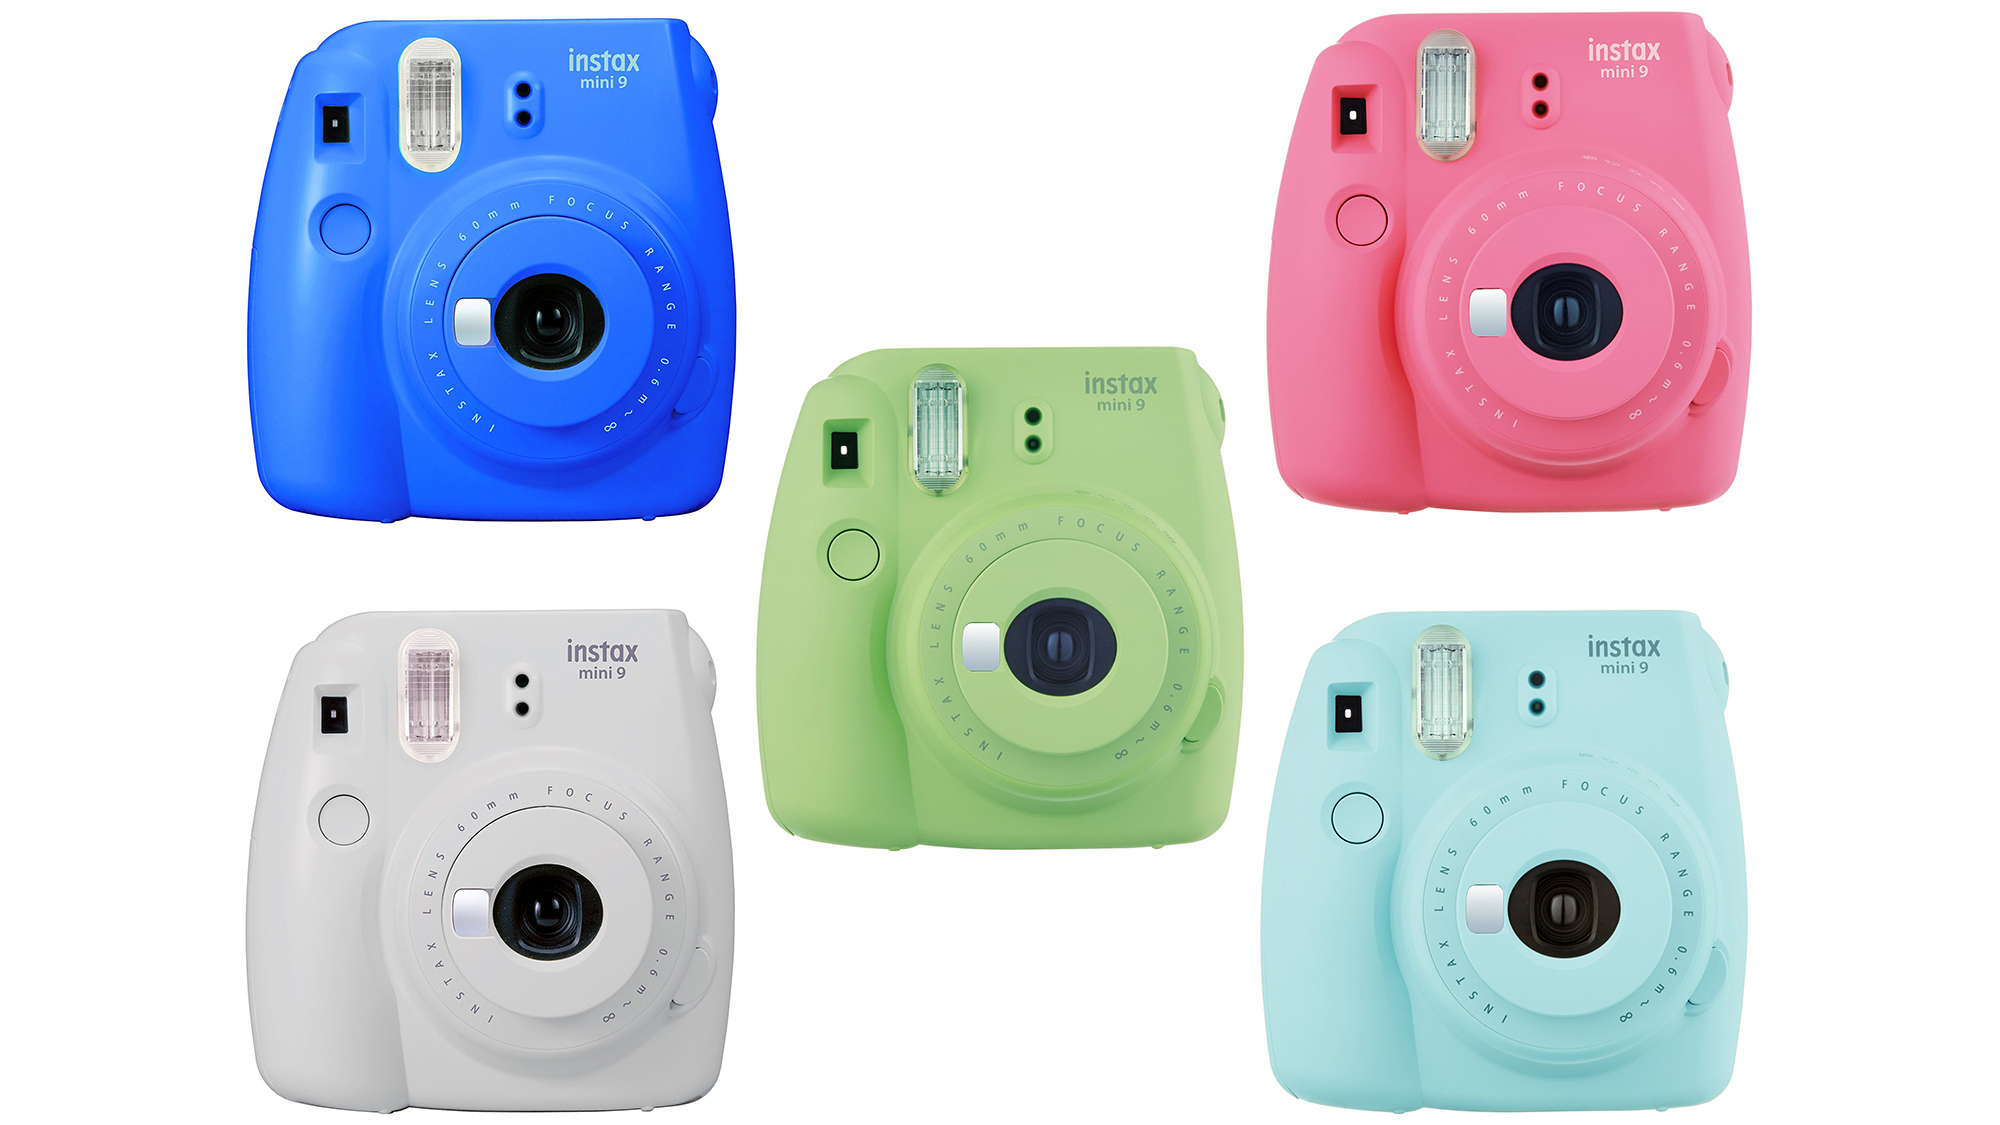 One of the best instant cameras is back down to its lowest price ever